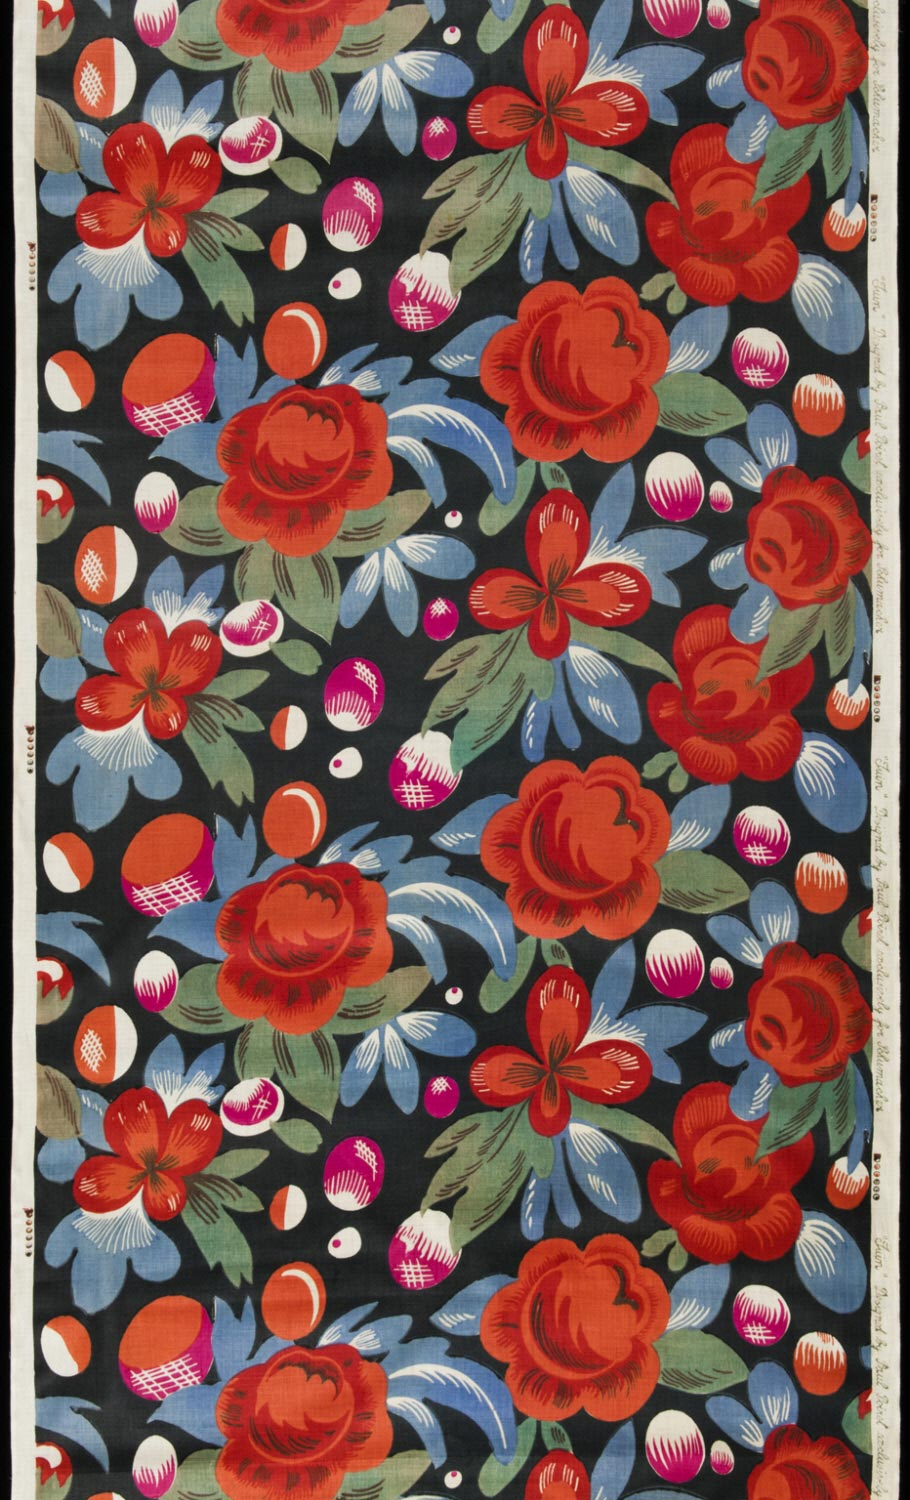 Collections Object : Printed Textile: Juin